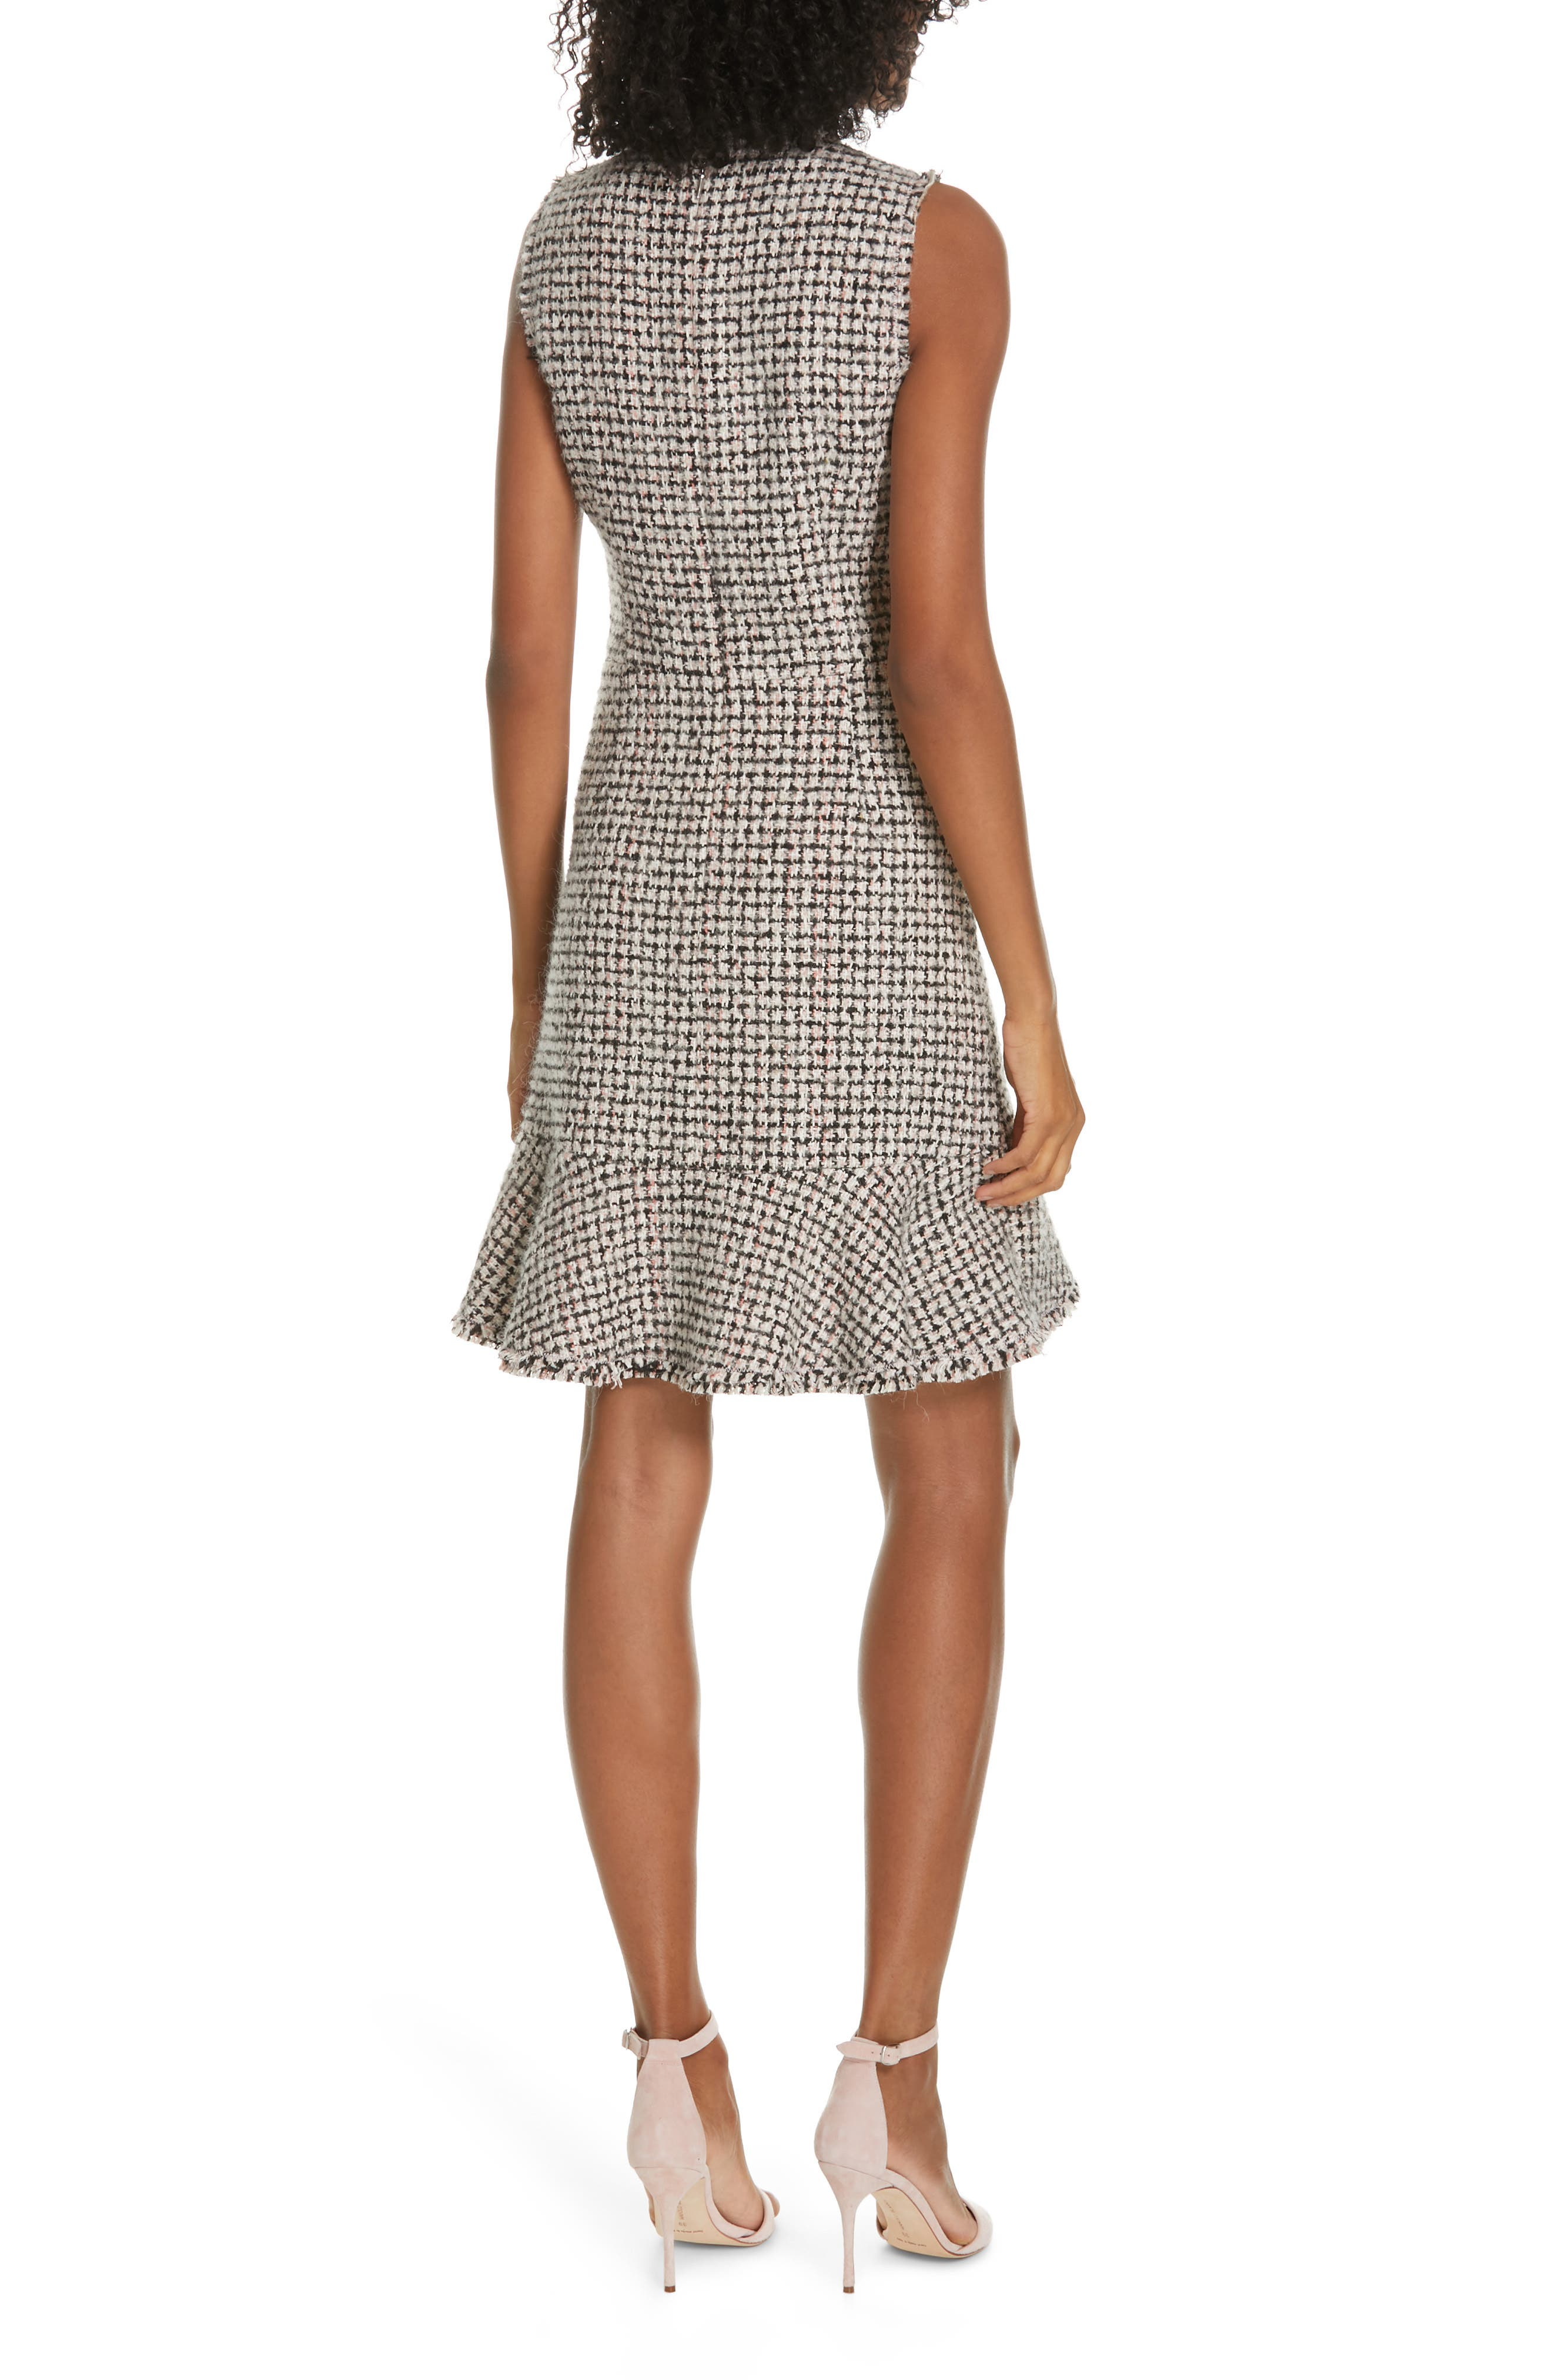 REBECCA TAYLOR, Houndstooth Tweed Dress, Alternate thumbnail 2, color, BLACK/ PINK COMBO